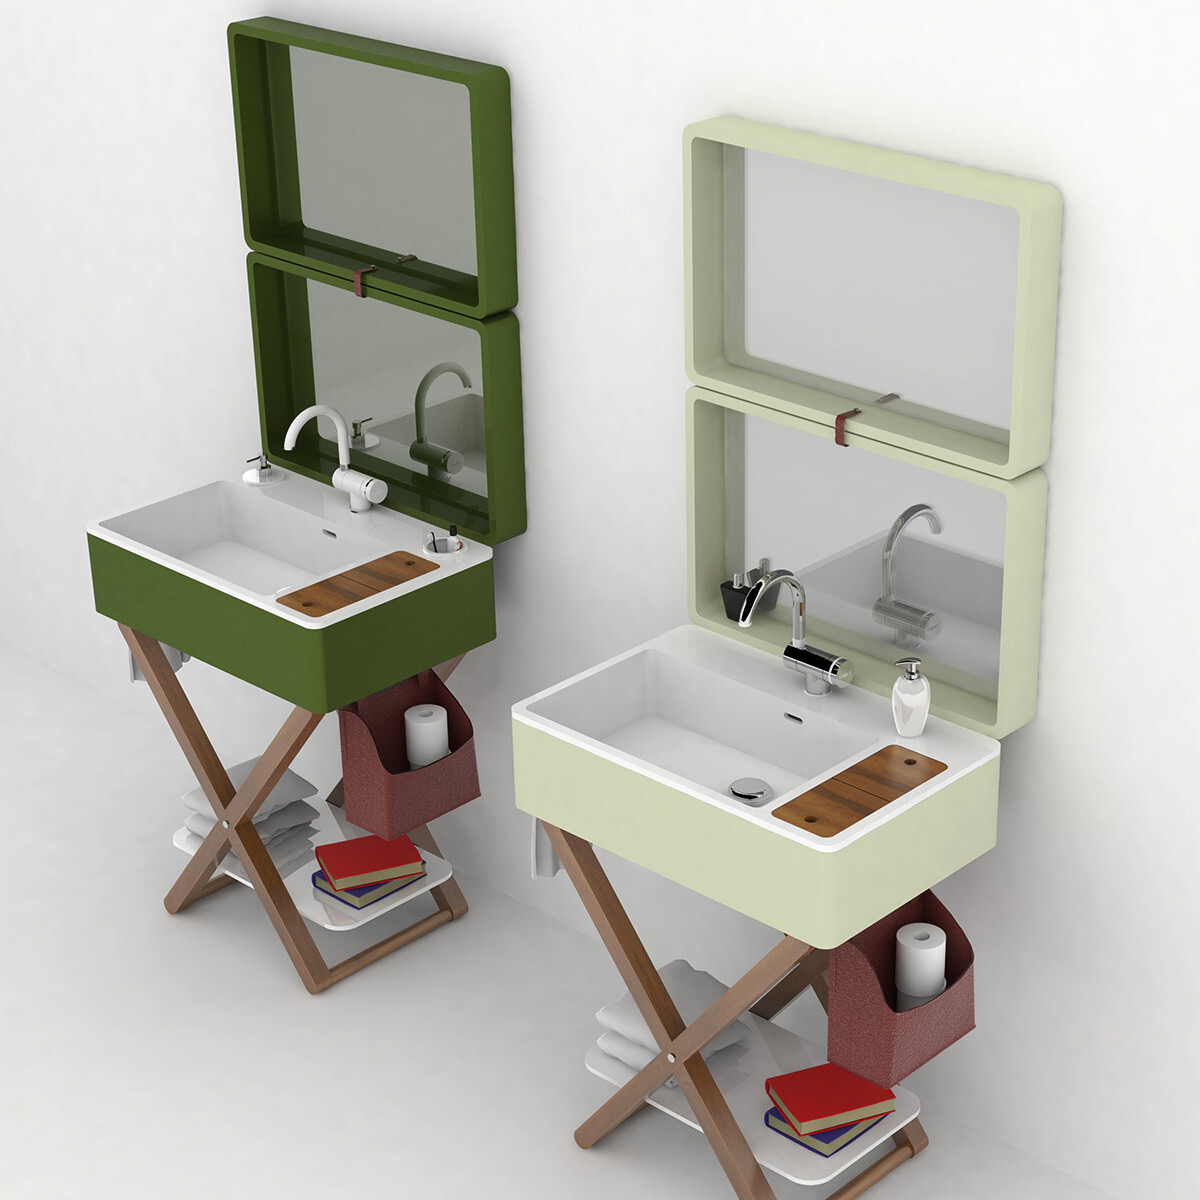 My bag portable bathroom by olympia ceramica - Meuble vasque retro ...